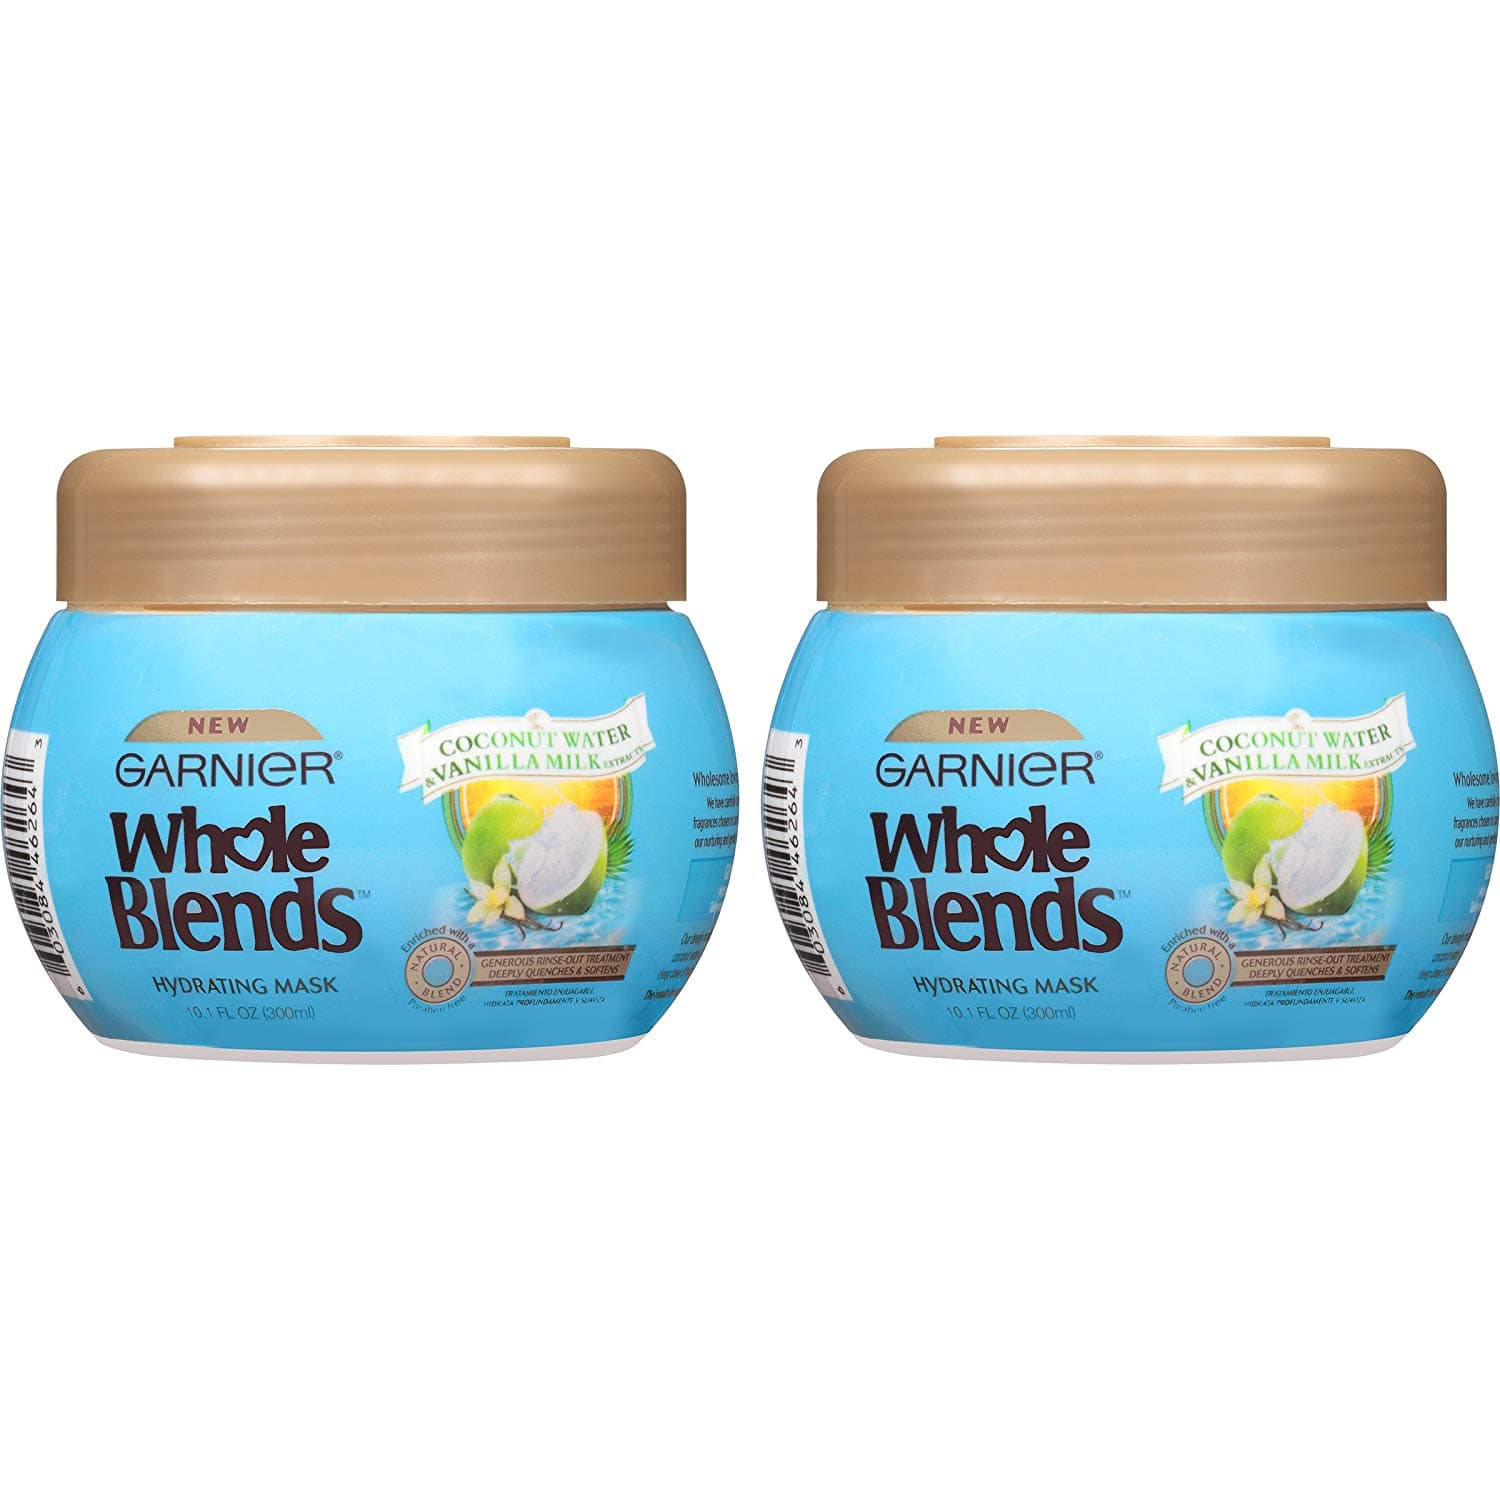 2-Ct 10.1oz Garnier Hair Care Whole Blends Hydrating Hair Mask $3.84 w/ S&S + Free S/H